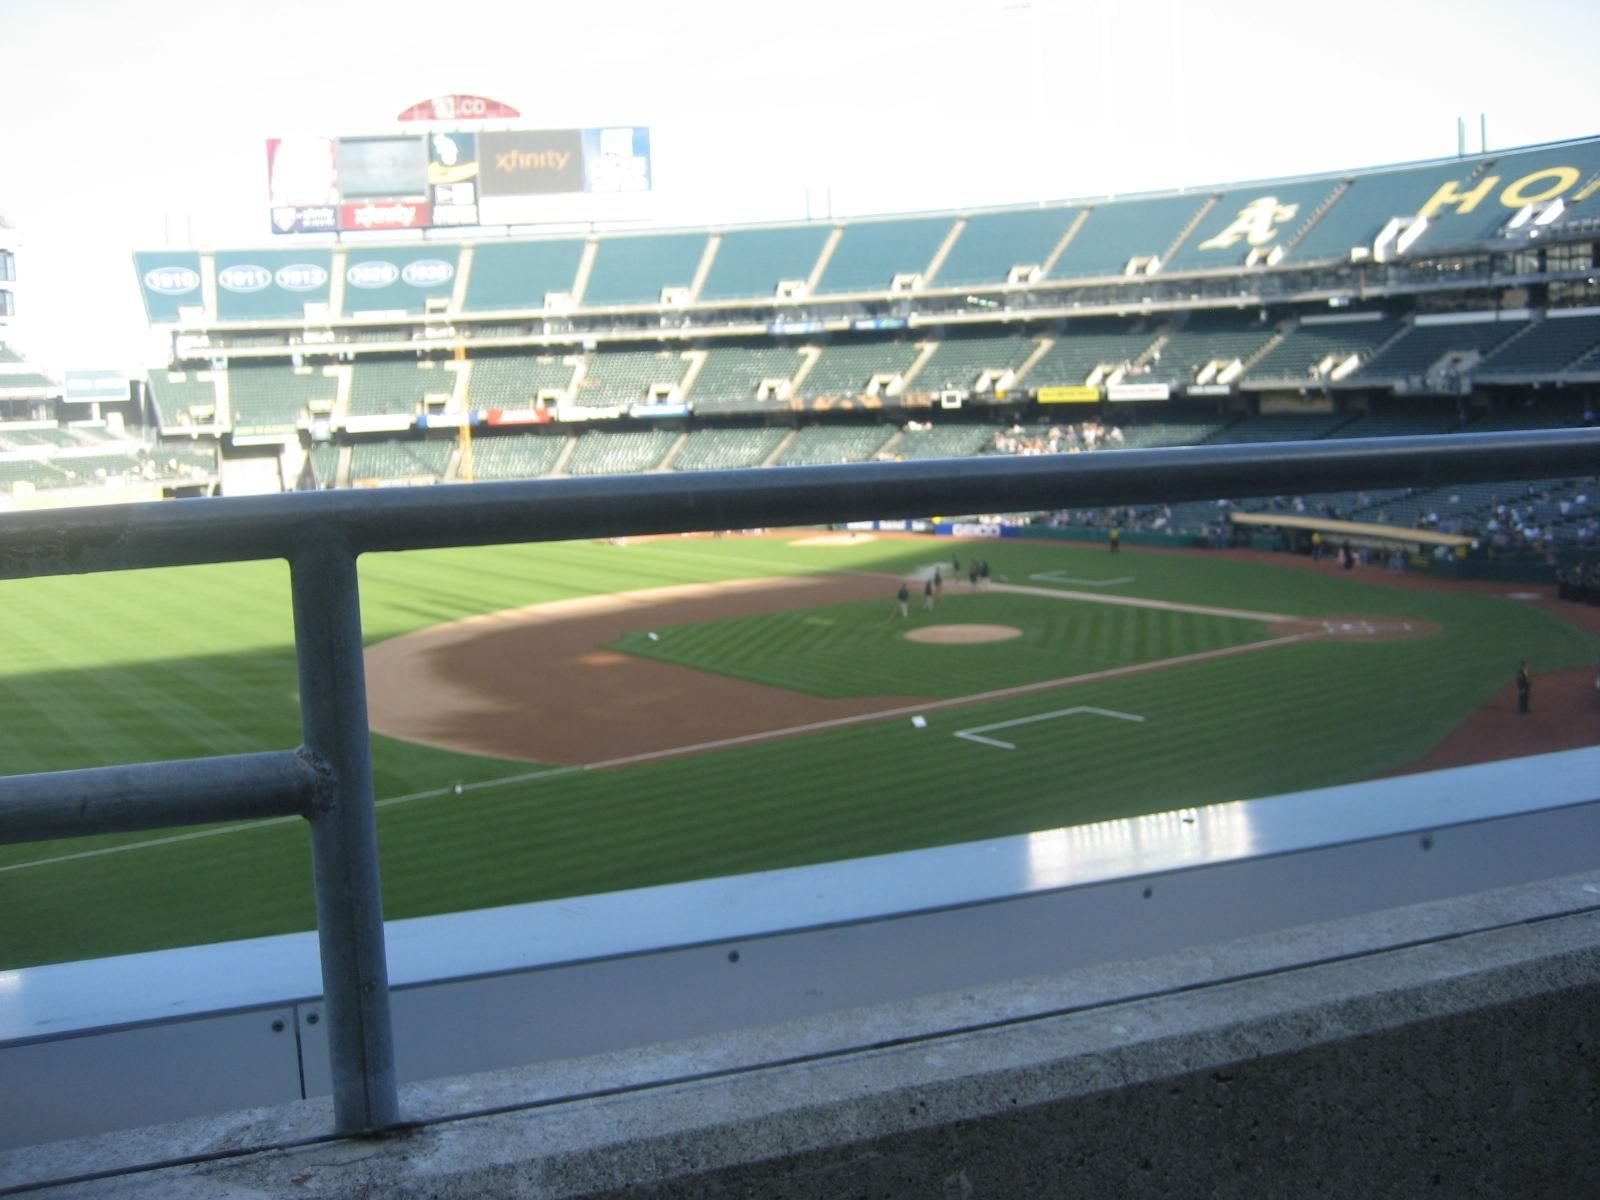 Oakland Athletics Seat View for Oakland Coliseum Section 225, Row 1, Seat 22